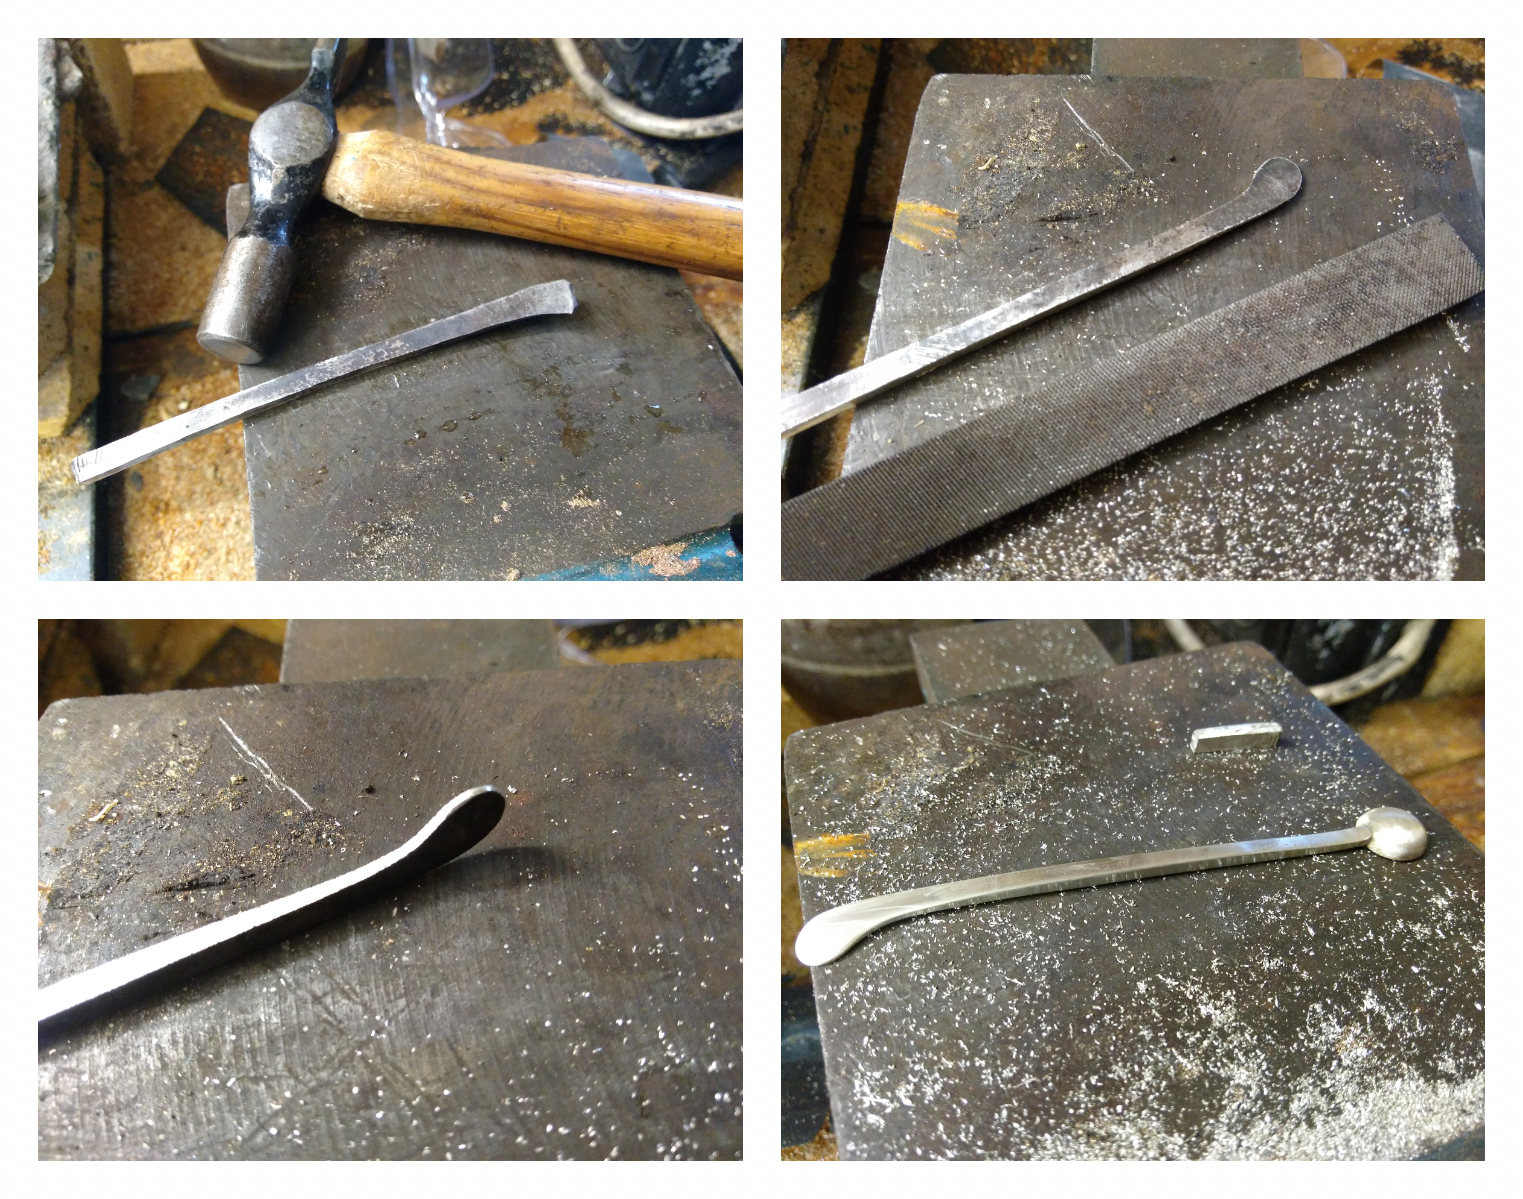 Sterling silver - Here is a quick snap shot of the process of forging the silver keys. The silver is heated red hot and is then allowed to cool. This anneals (softens) the metal before it is beaten and hammered to shape in a process called forging. While forging brings the key to shape it also has the benefit of imparting strength back into the metal.